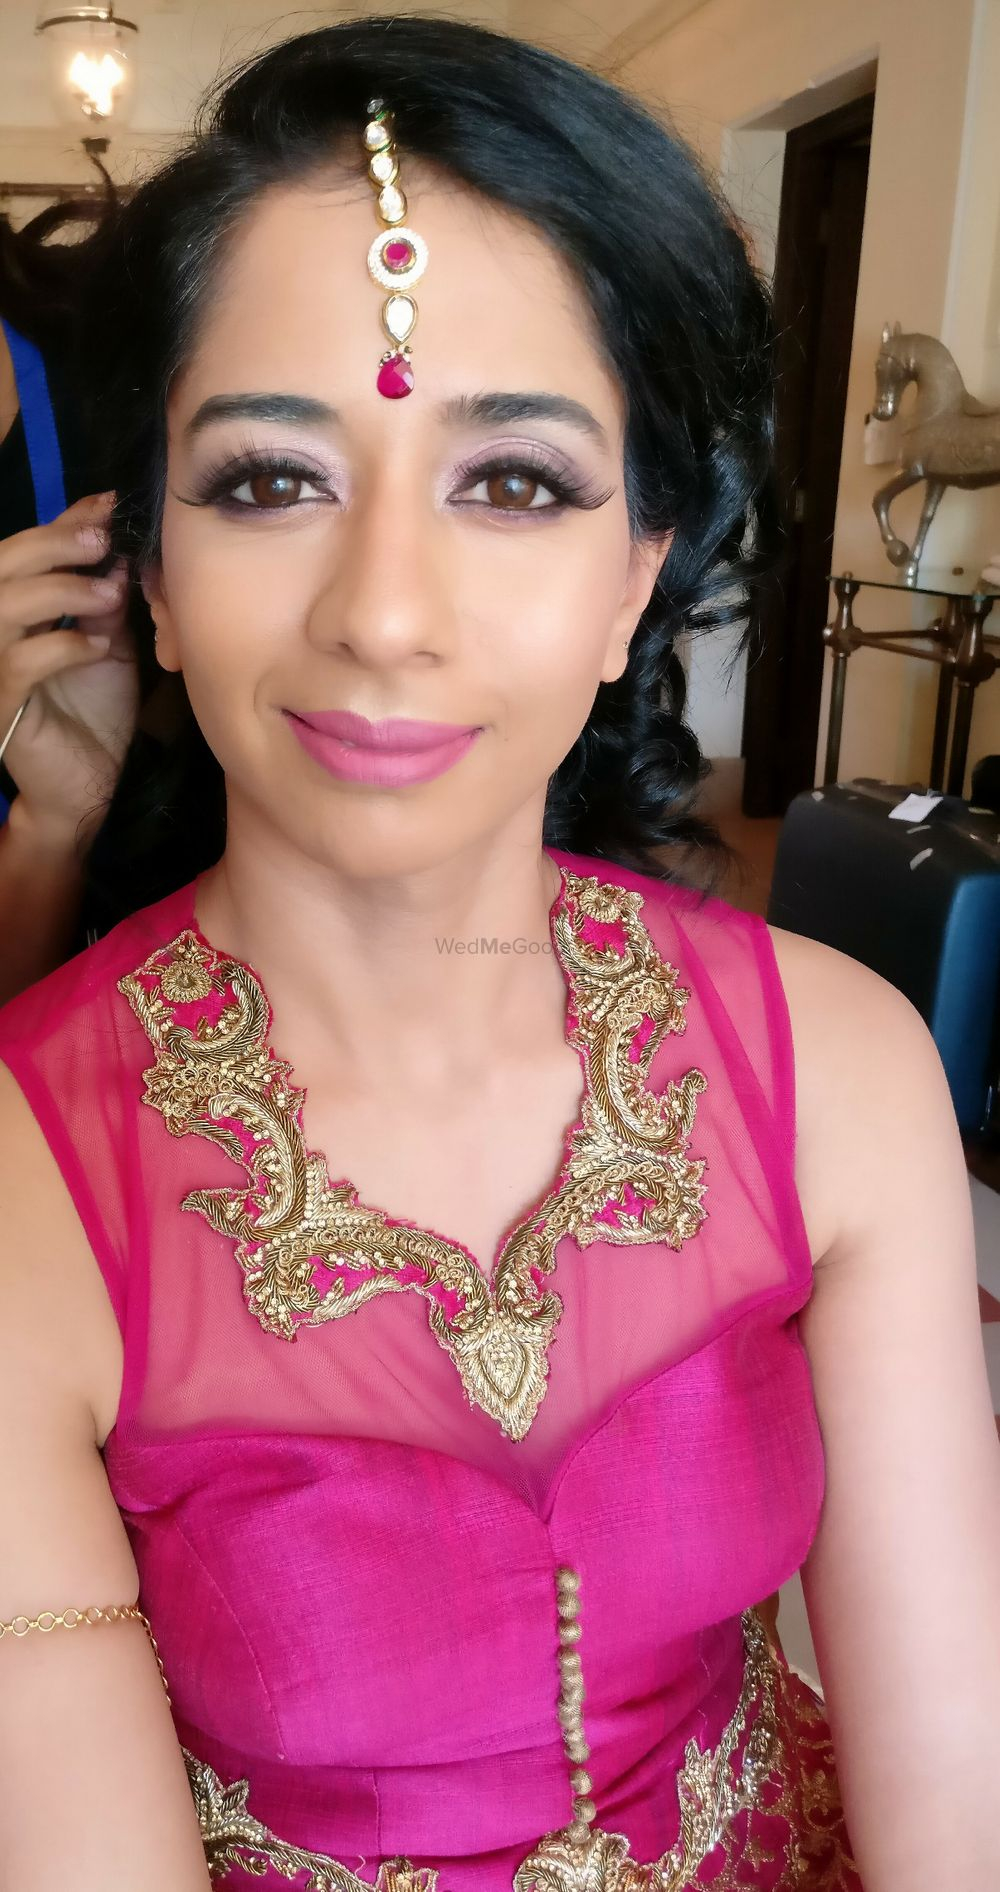 Photo From Dr.Tina Raman (Bride From USA) - By Makeovers By Kamakshi Soni